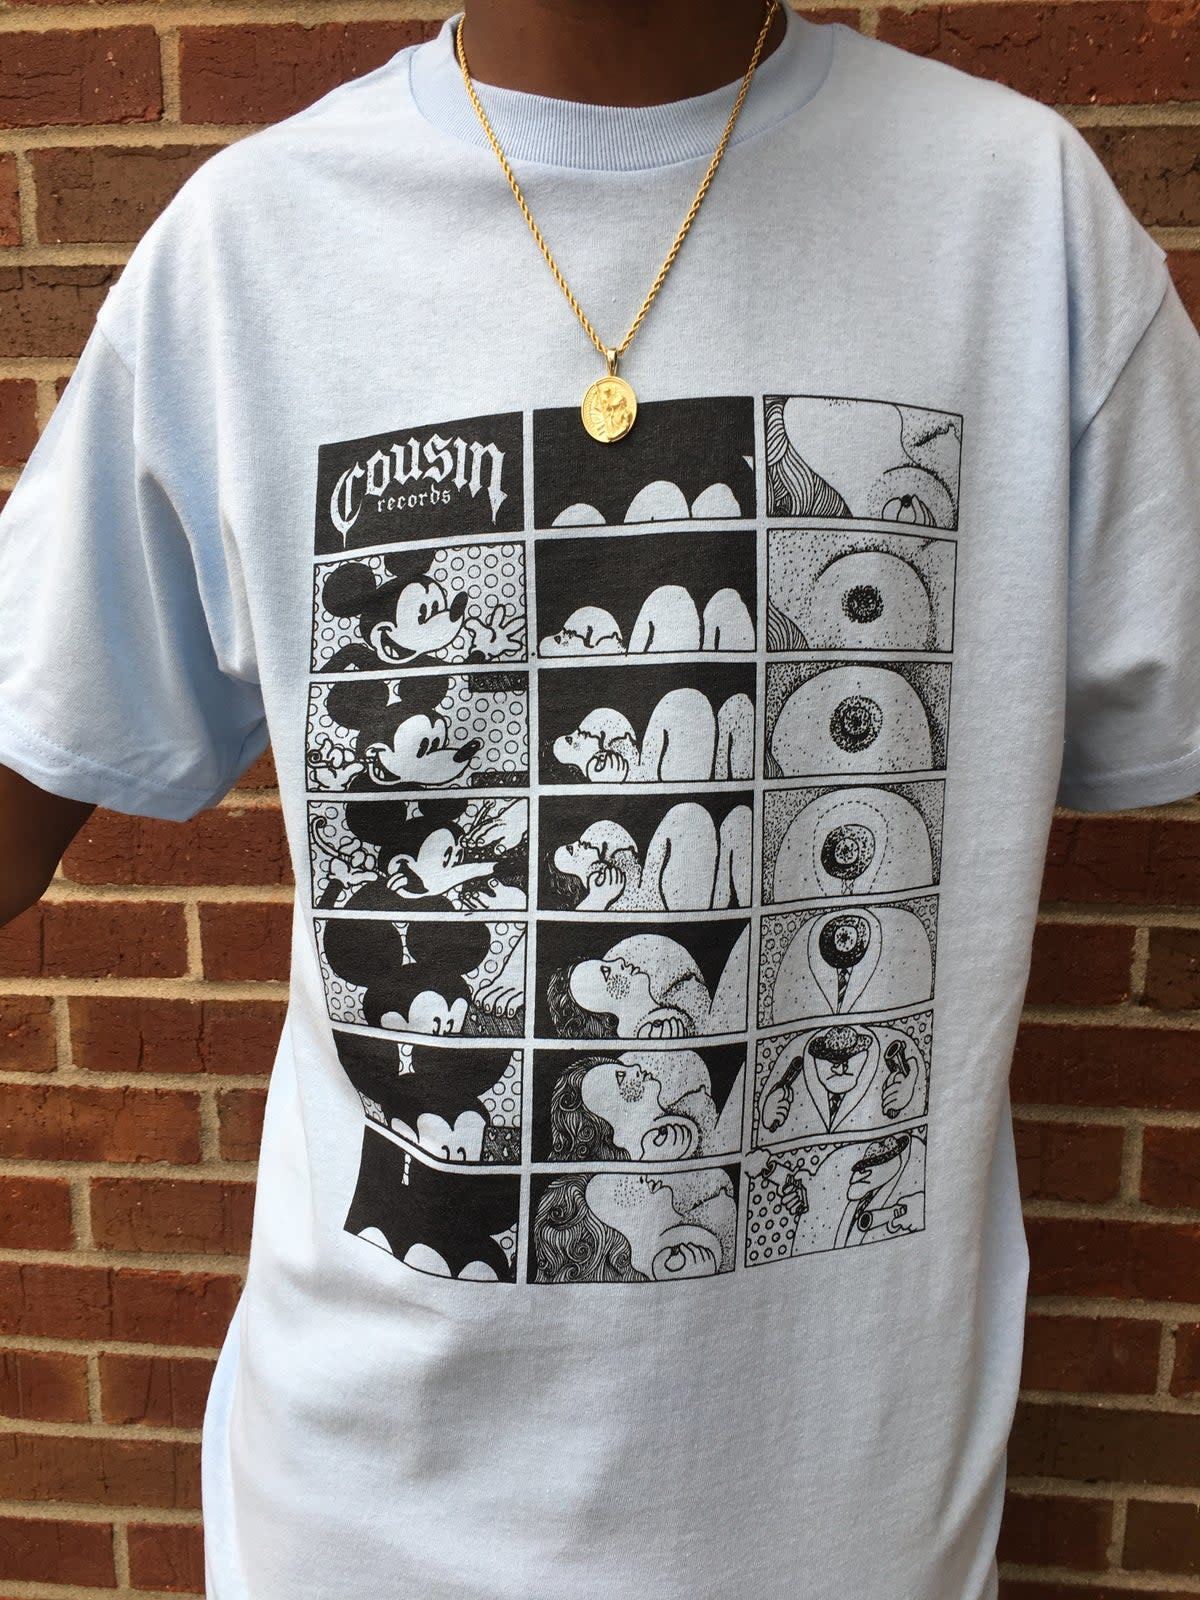 Cousin Records Cousin Records Toon Seq Tee - Baby Blue